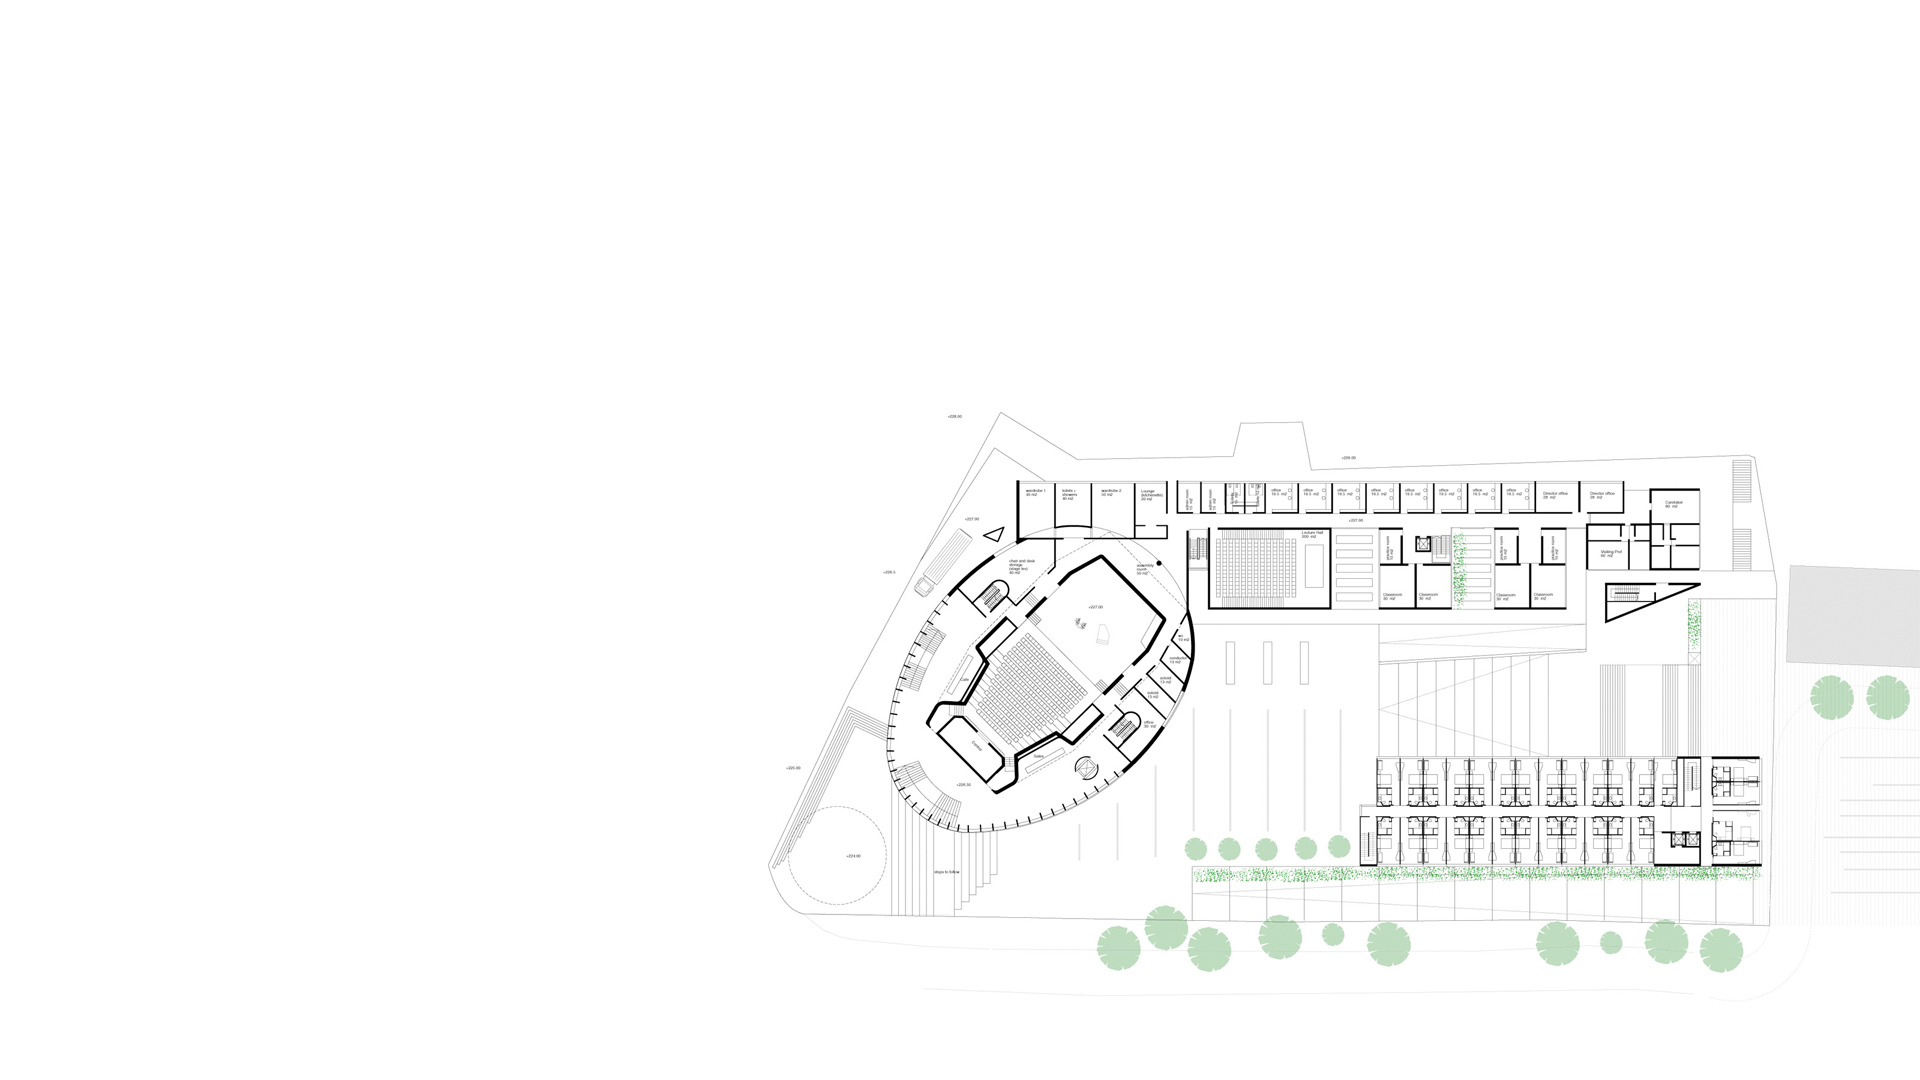 Ground floor plan showing the recital hall within the egg shaped element and the music school at the Kronberg Academy & Music School, Kronberg, Germany